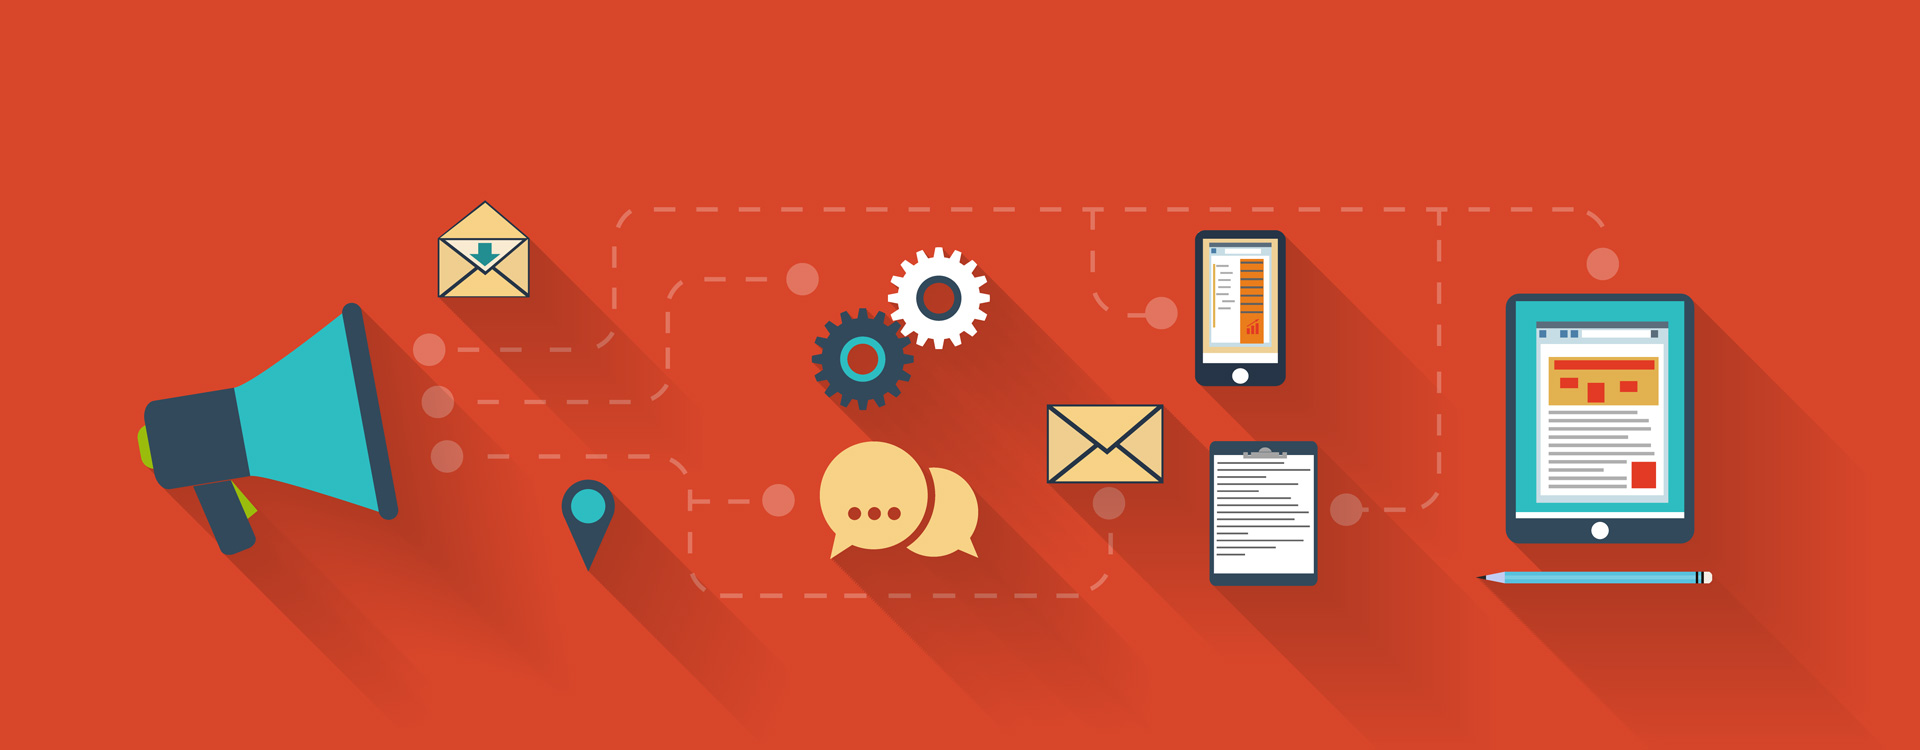 Marketing content, understand why and how